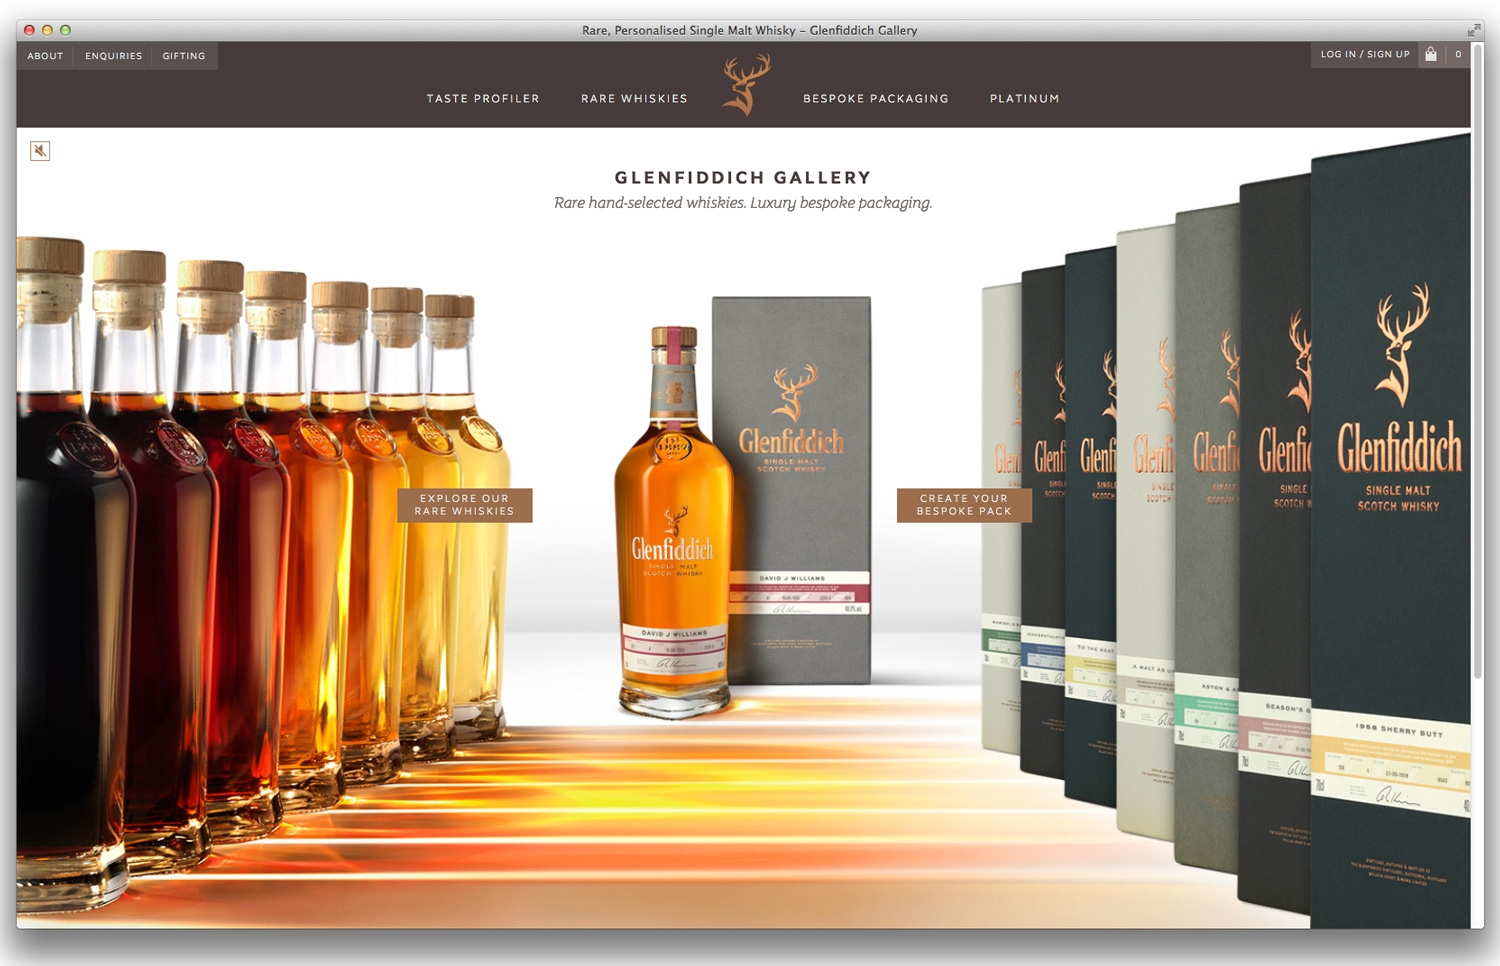 Pic.: Glenfiddich Gallery —a responsive whisky website that allows malt lovers to create their own one-of-a-kind Glenfiddich packaging. Designed by  Purple Creative, 2014